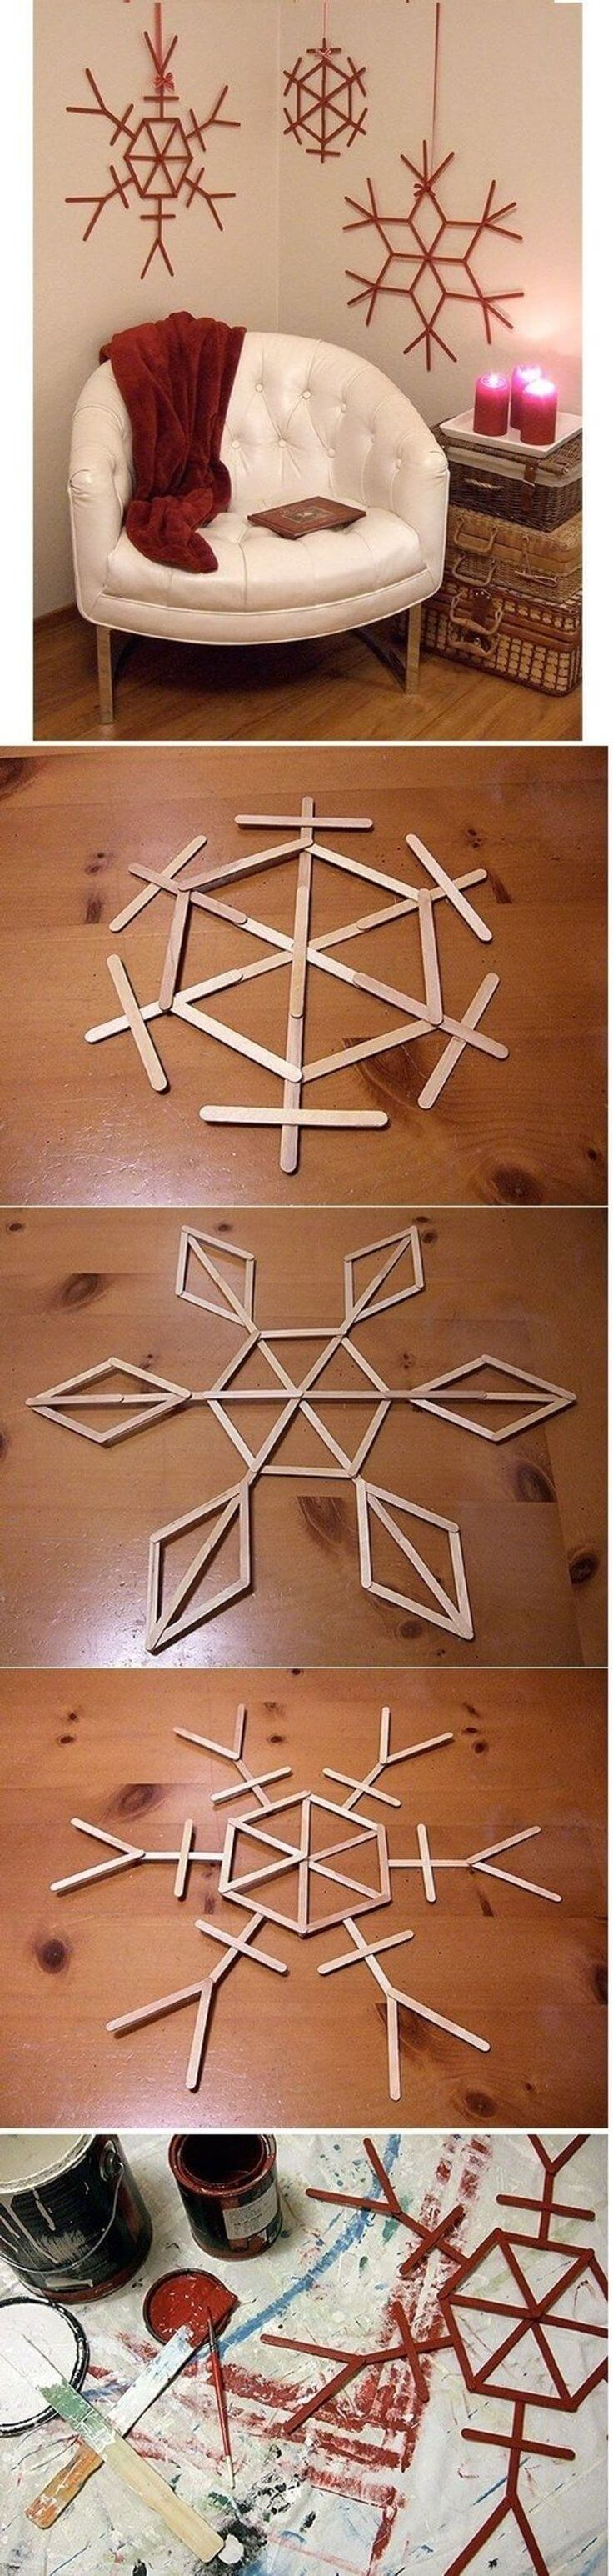 Creative Christmas Wall Decorating with Snowflakes